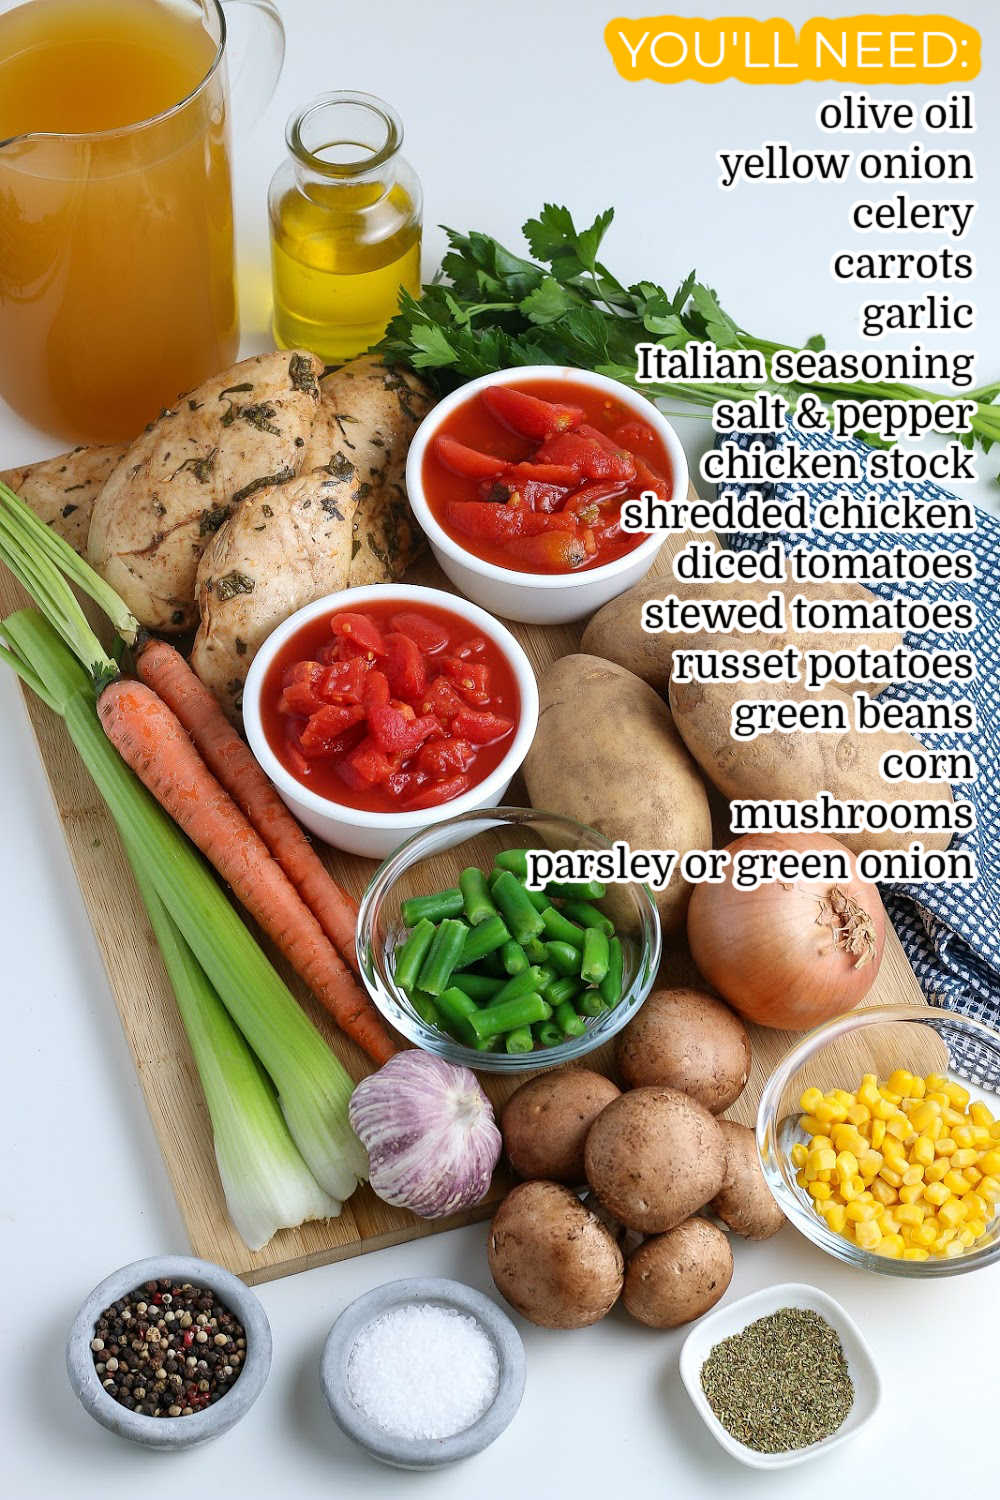 All of the ingredients needed to make this Chicken Vegetable Soup recipe.